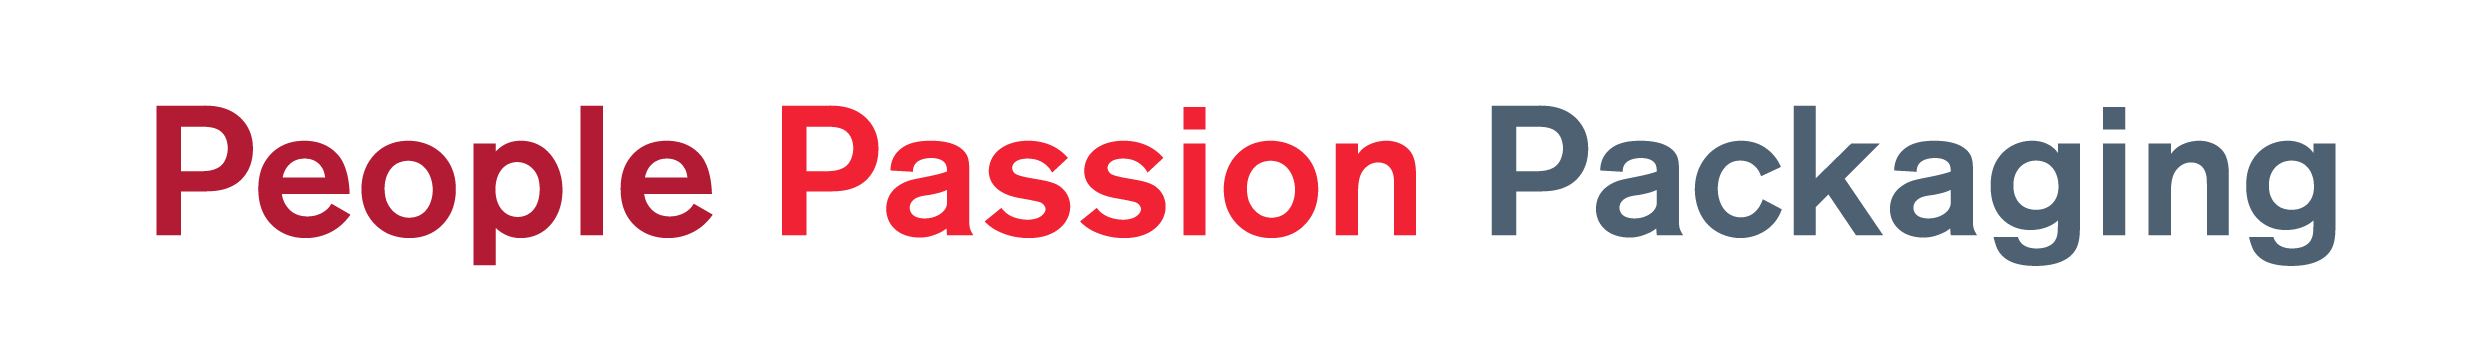 People Passion Packaging